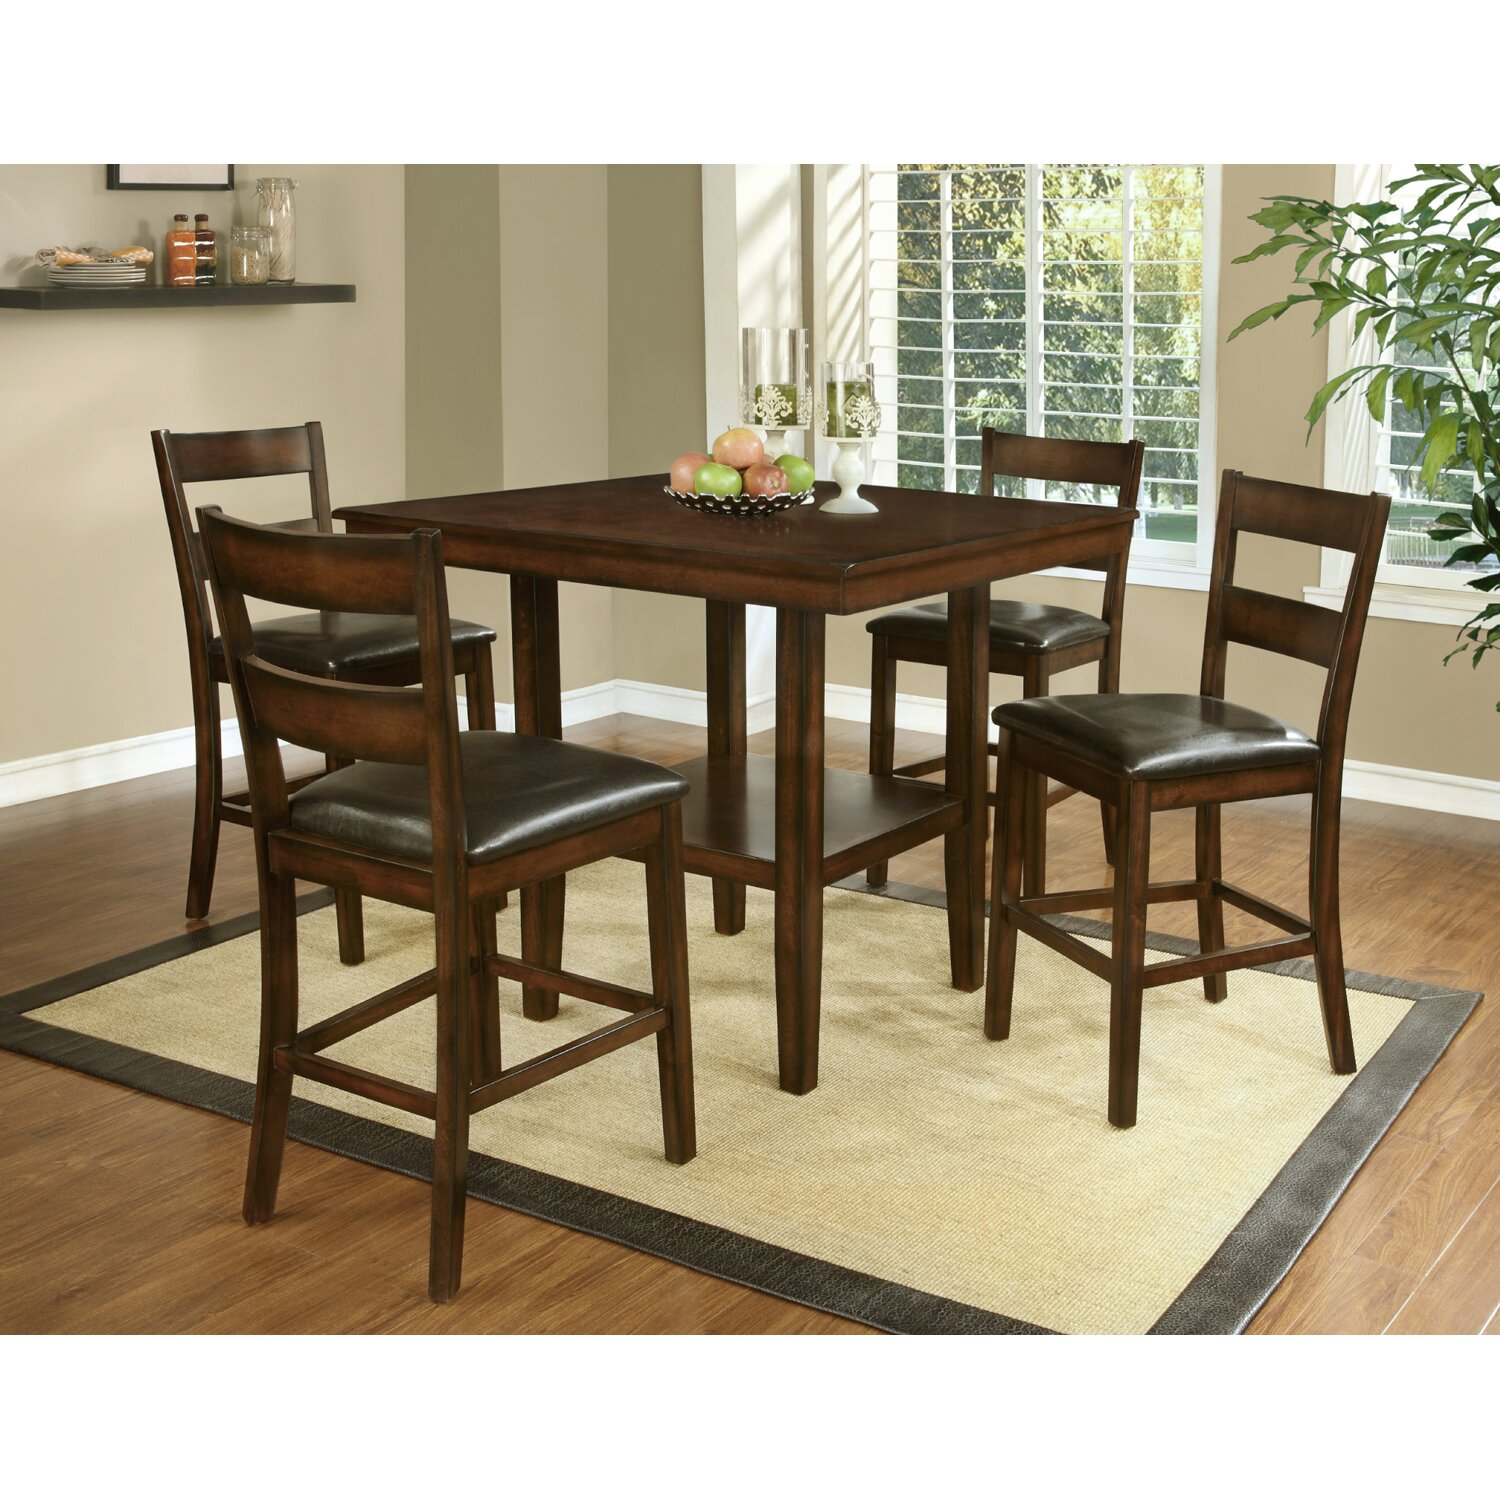 Counter Height Dining Sets 5 Piece : Shorebilly 5 Piece Counter Height Dining Set by Red Barrel Studio